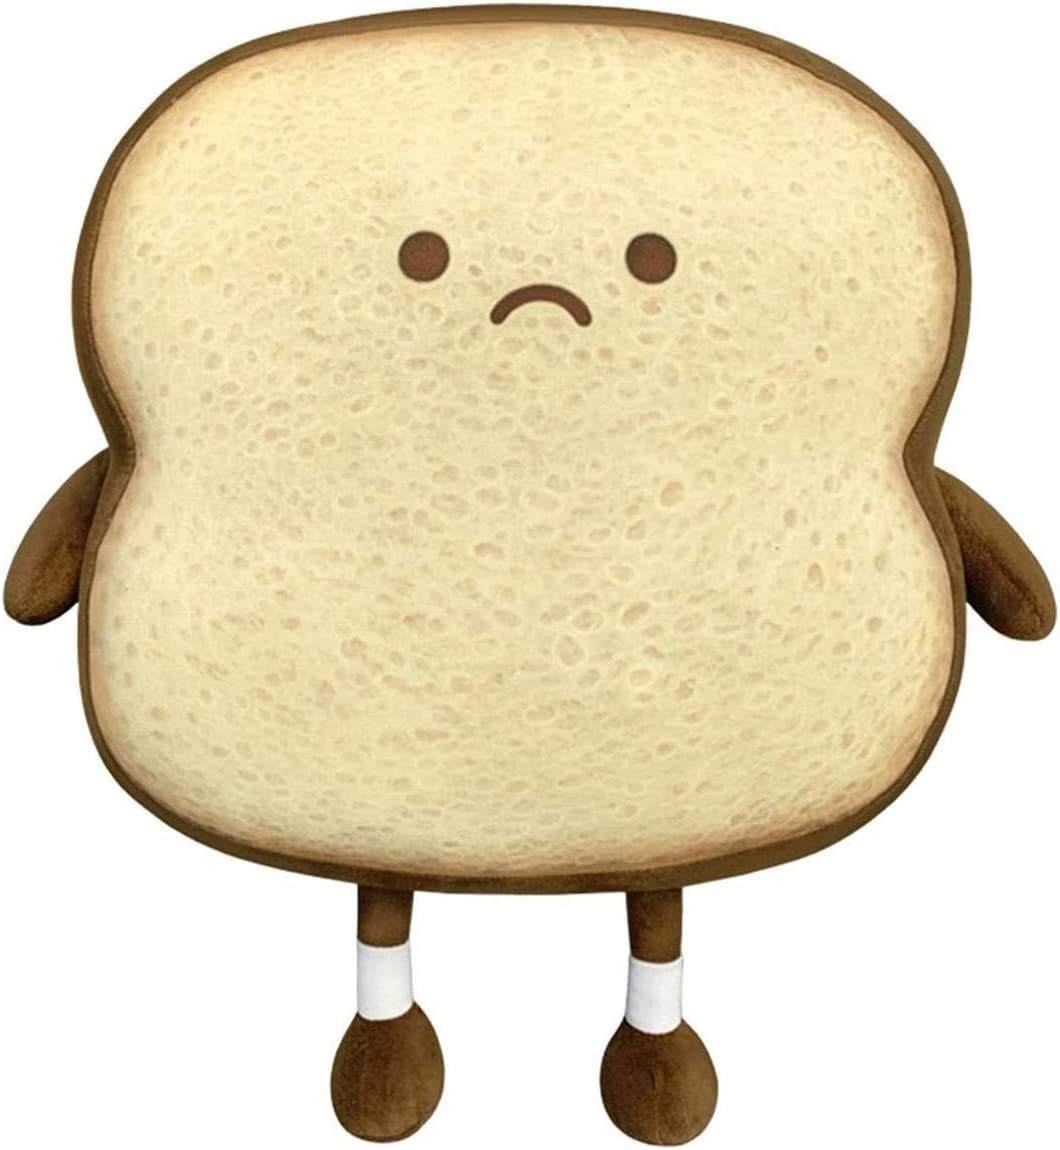 Toast Sliced Bread Pillow,Bread Shape Plush Pillow,Facial Expression Soft Toast Bread Food Sofa Cushion Stuffed Doll Toy for Kids Adults Gift Home Bed Room Decor (S)